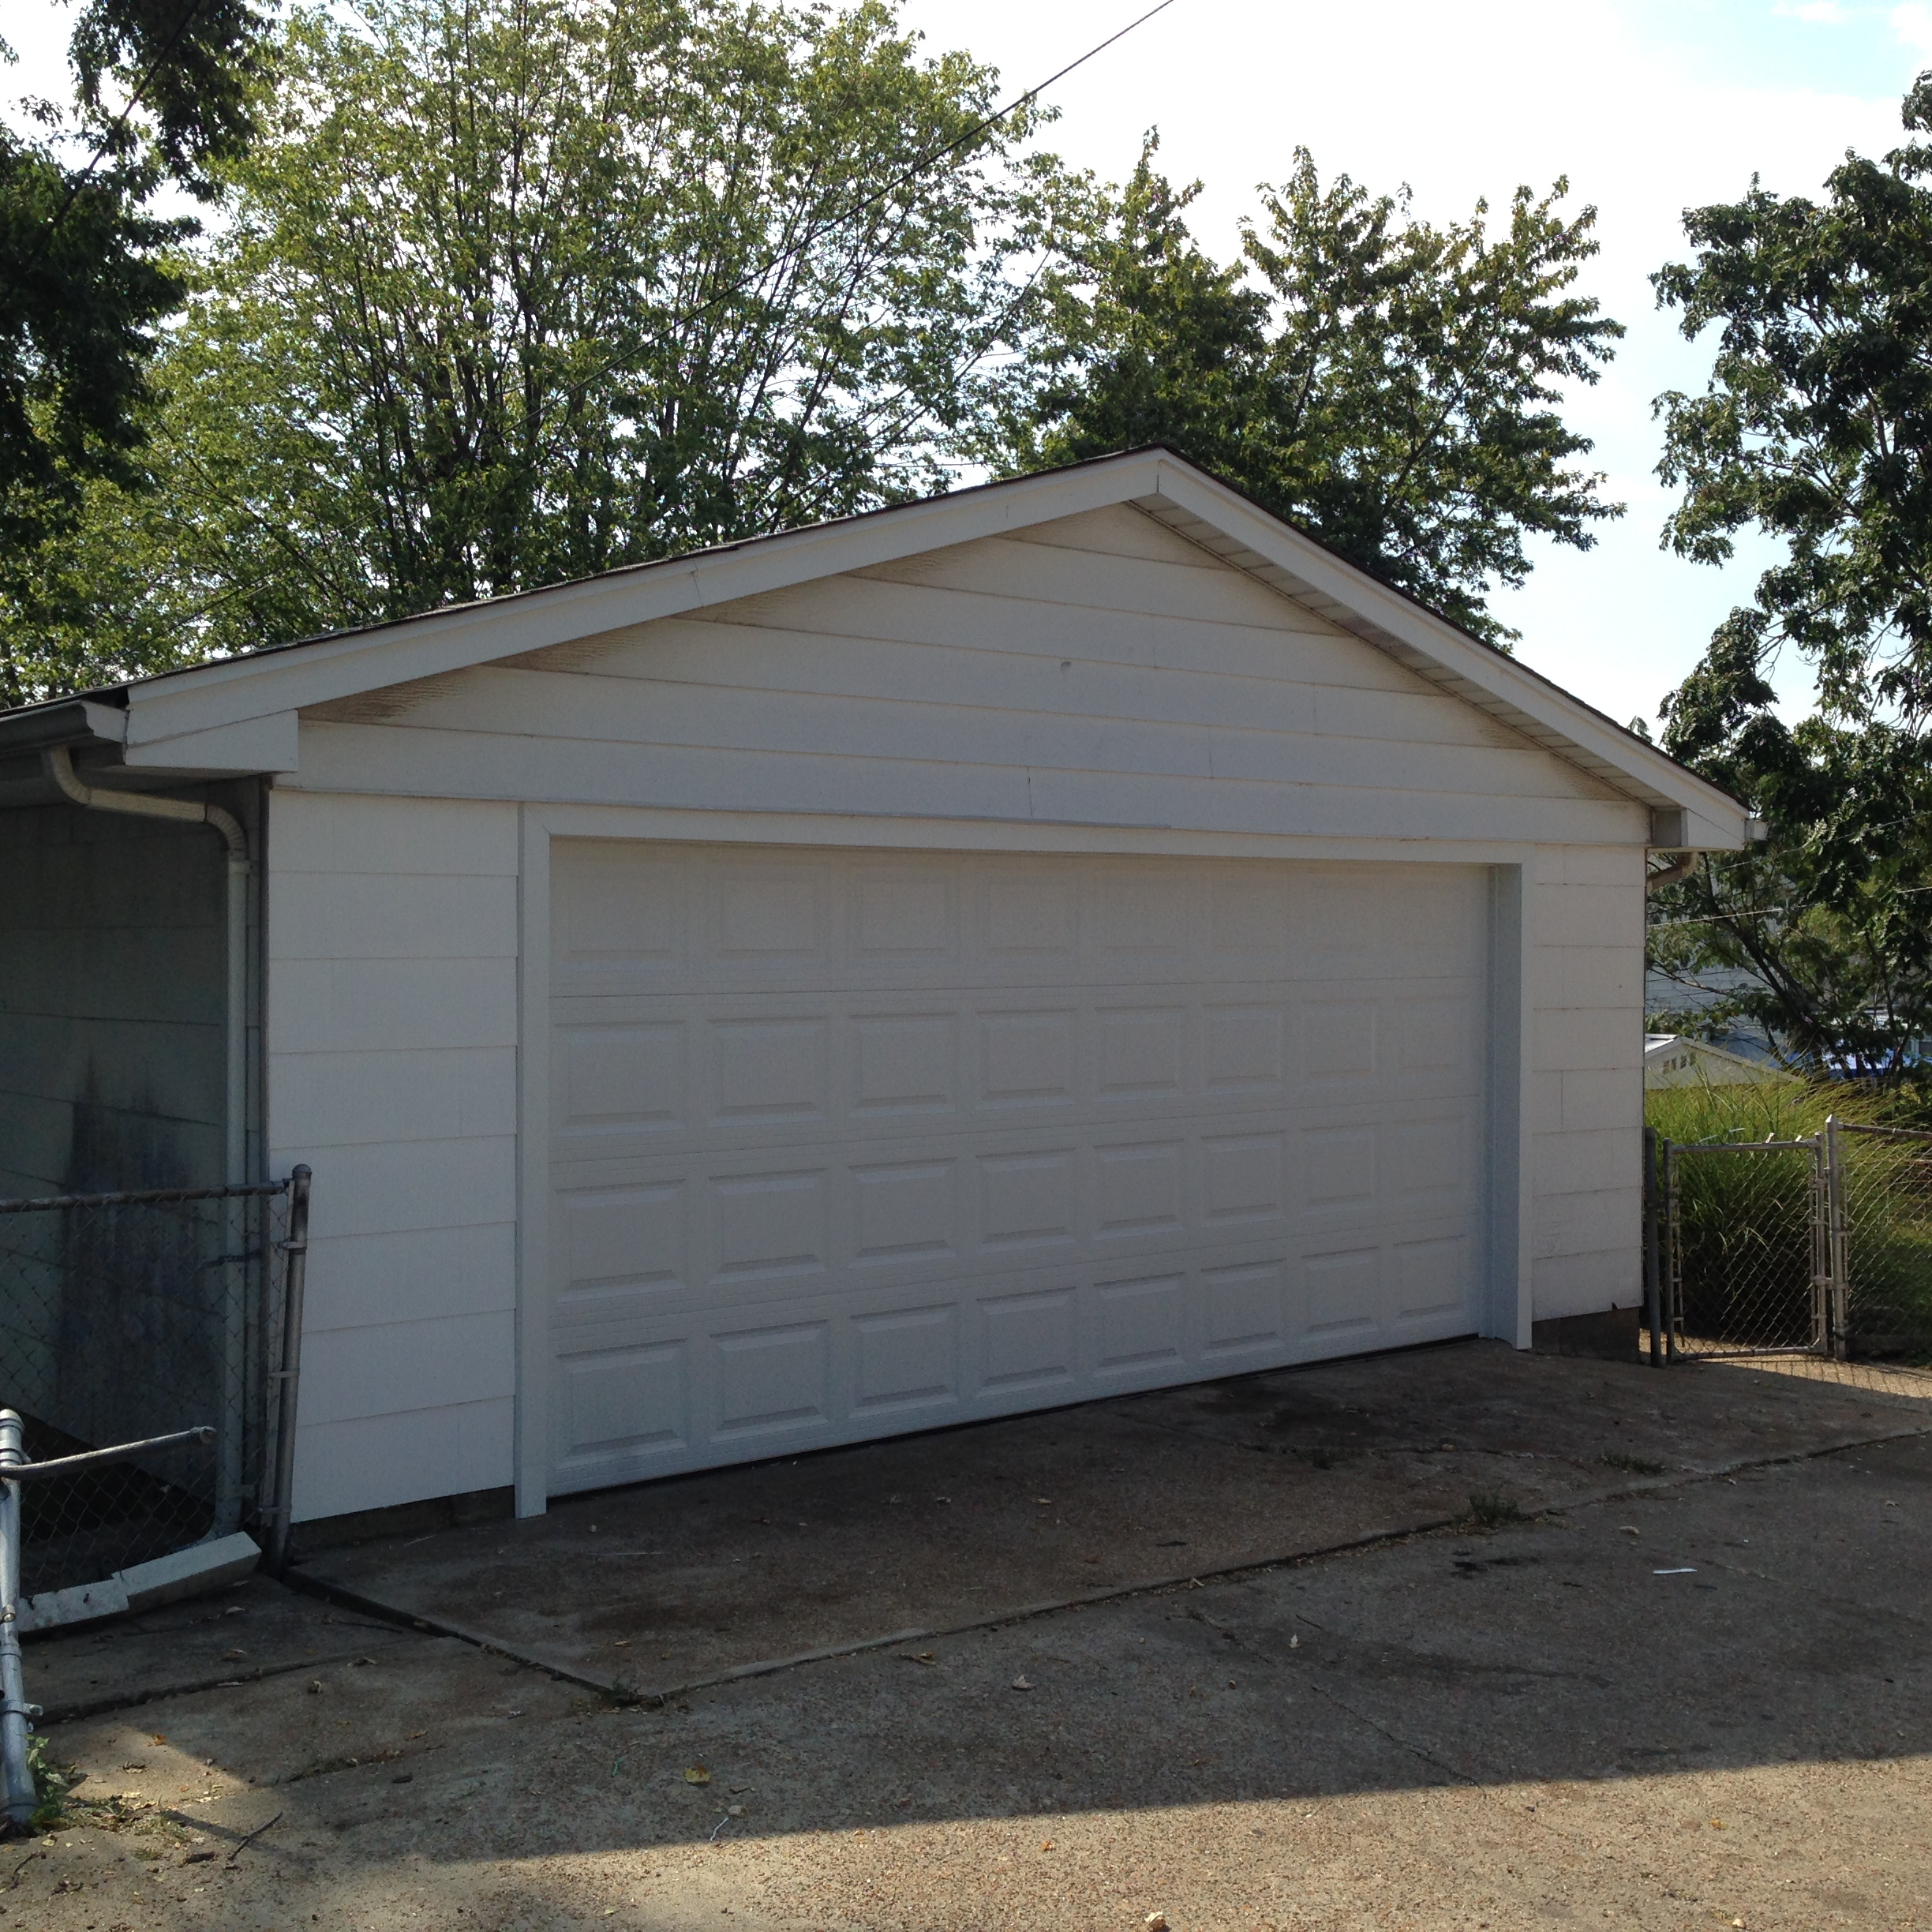 Garage door gallery cgx overhead door st louis mo for Cost to build a garage st louis